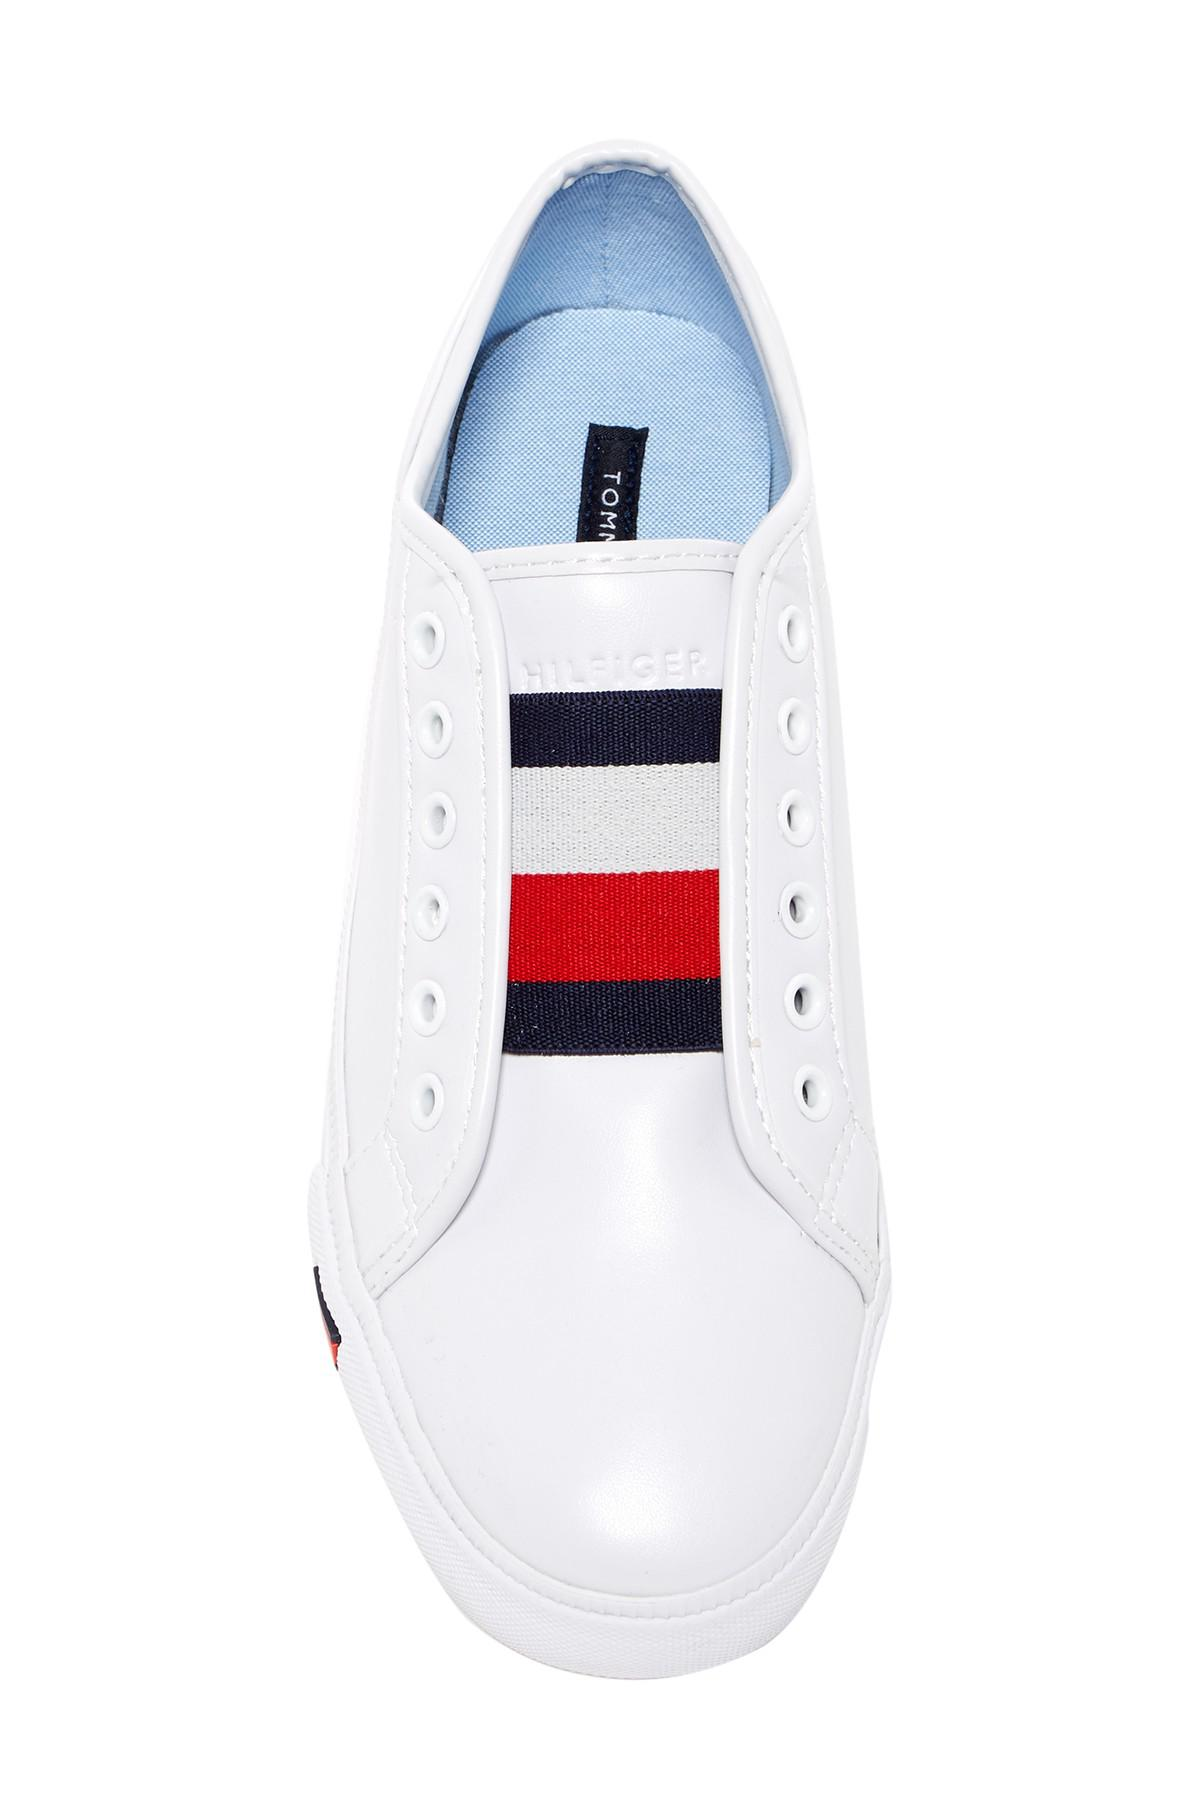 8048b7a1d77d6 Lyst - Tommy Hilfiger Anni Sneaker in White